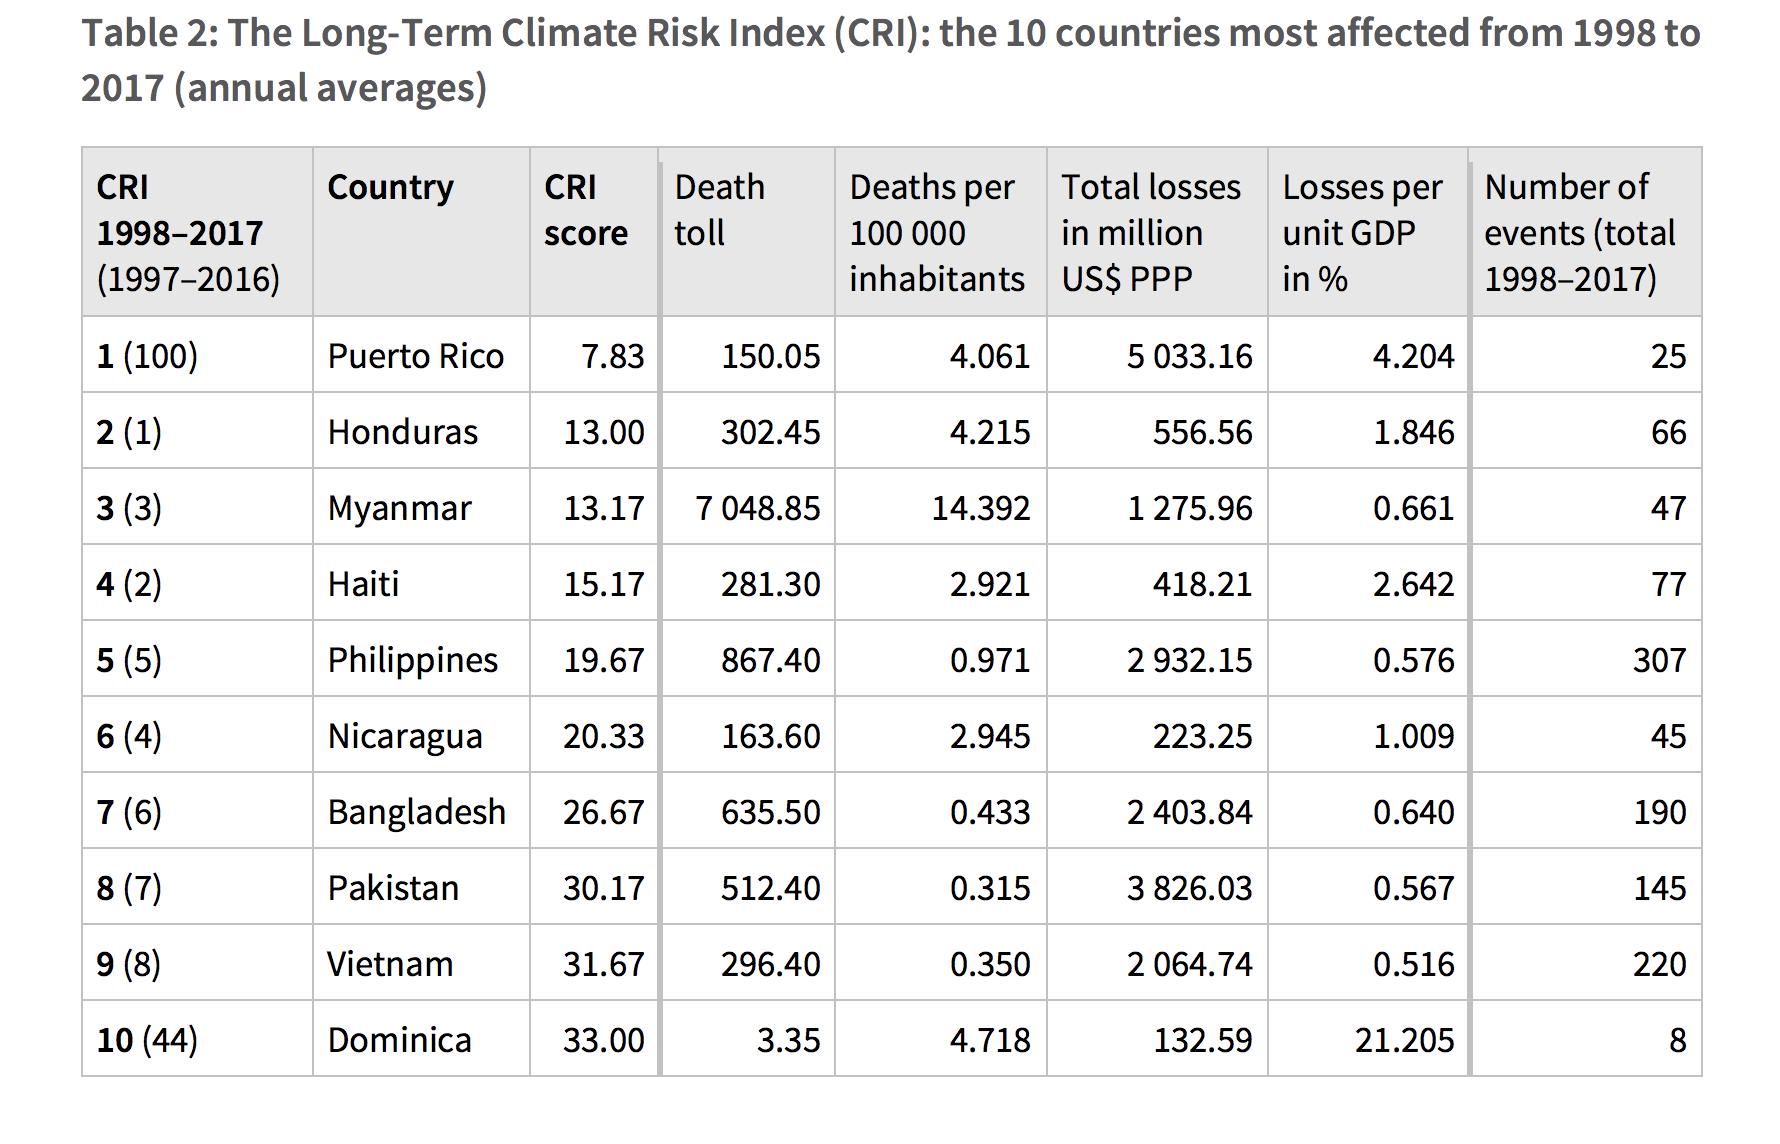 Over the past 20 years, Pakistan has been one of the countries hardest-hit by the effects of climate change